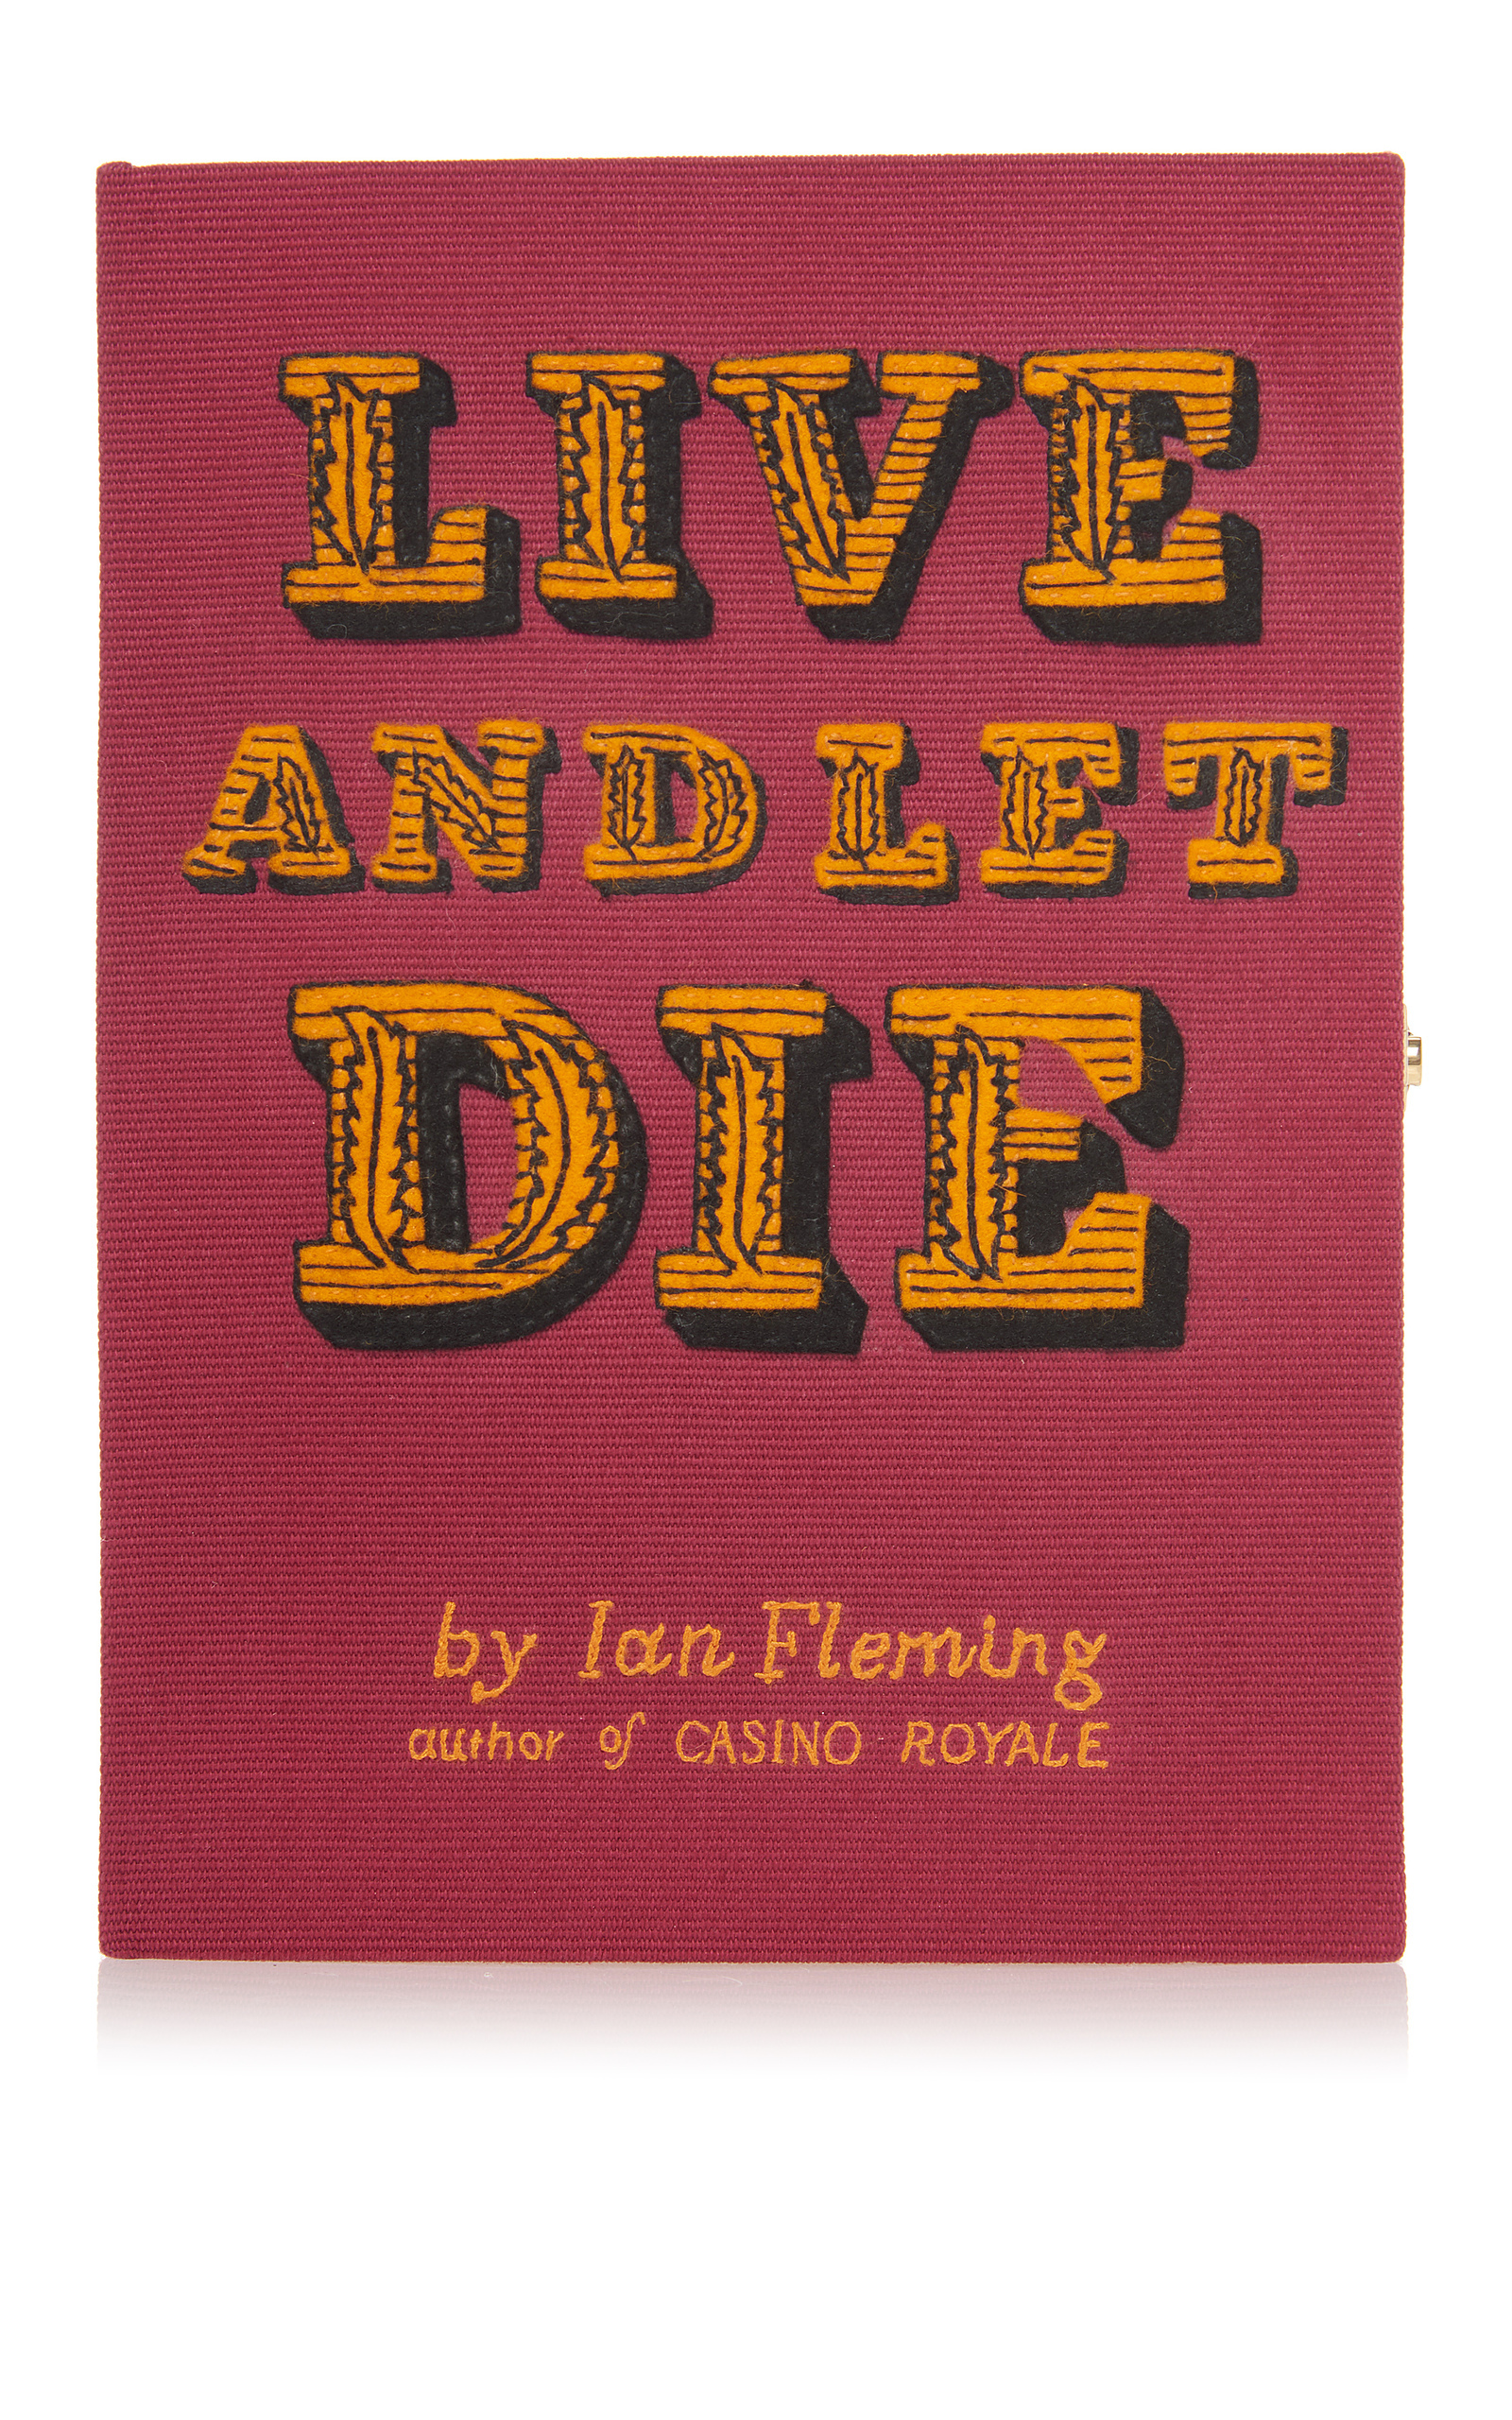 LIVE AND LET DIE BOOK CLUTCH BAG